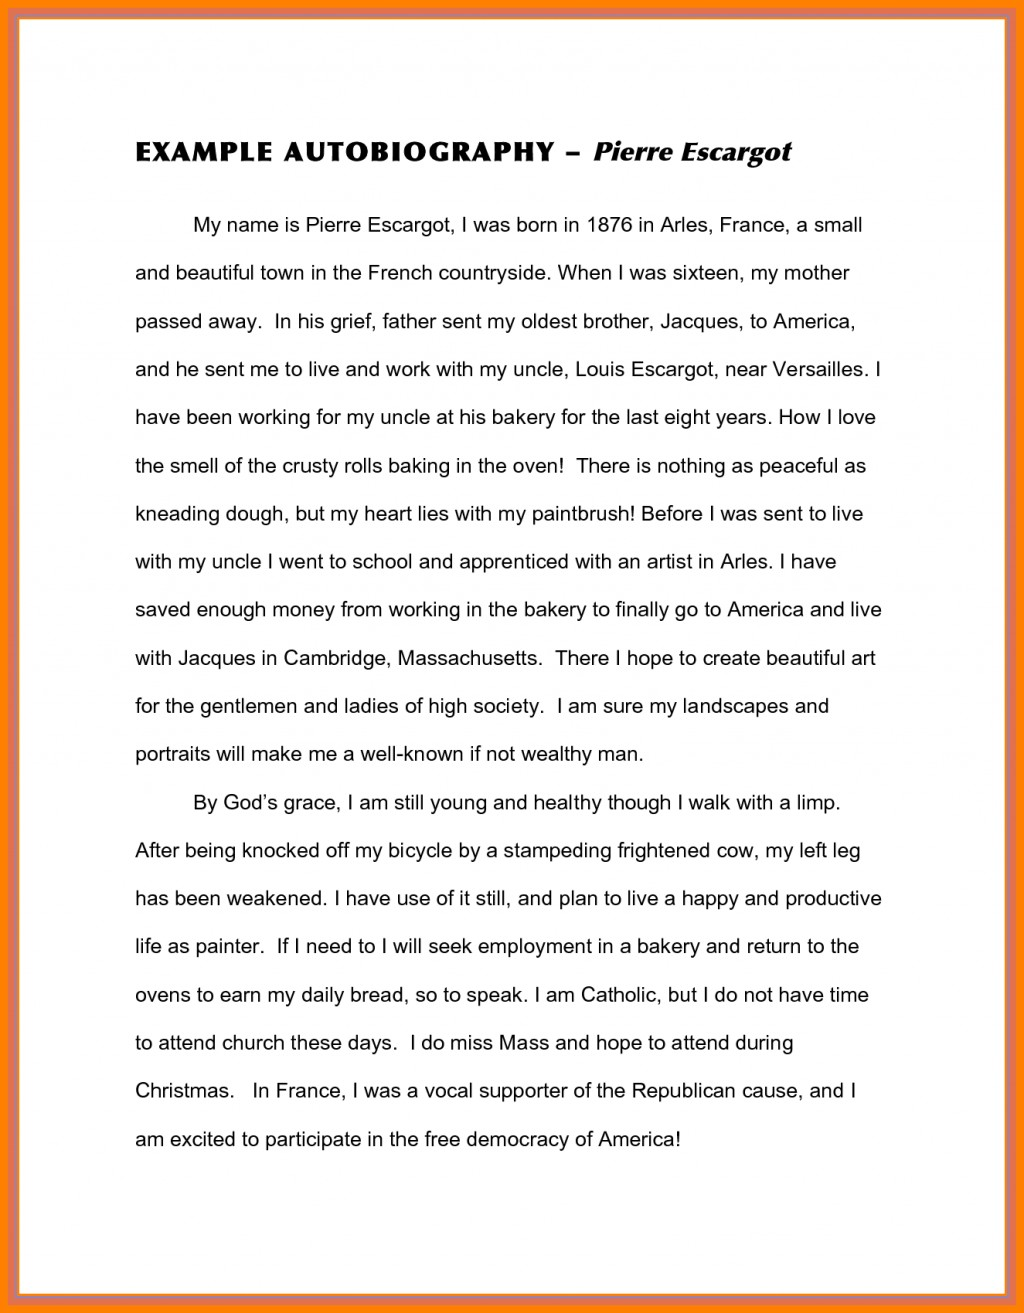 013 Sample Biography Essay Auto Autobiography Latest Captures Example Of Unforgettable About Myself Elementary Self Large